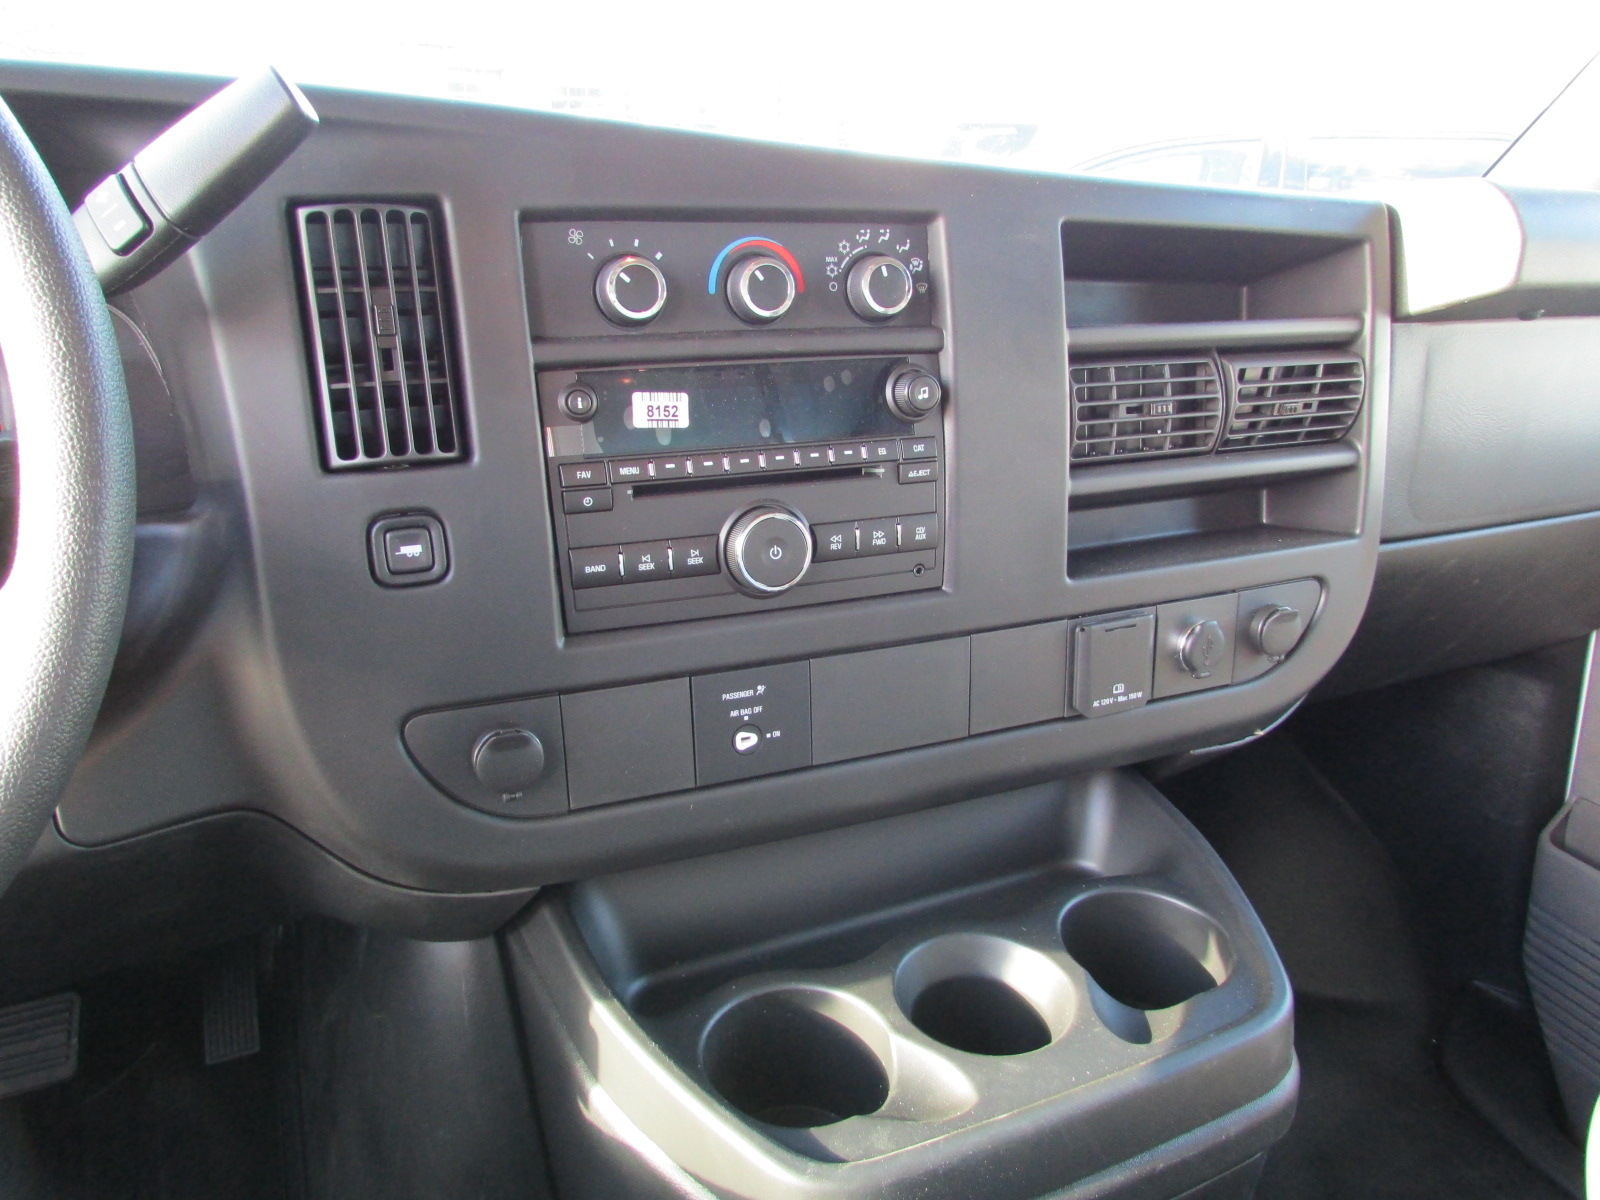 New 2017 chevrolet express 3500 cutaway van for sale in colmar pa 2017 express 3500 unicell aerocell cw cutaway van 8334m photo 9 sciox Gallery